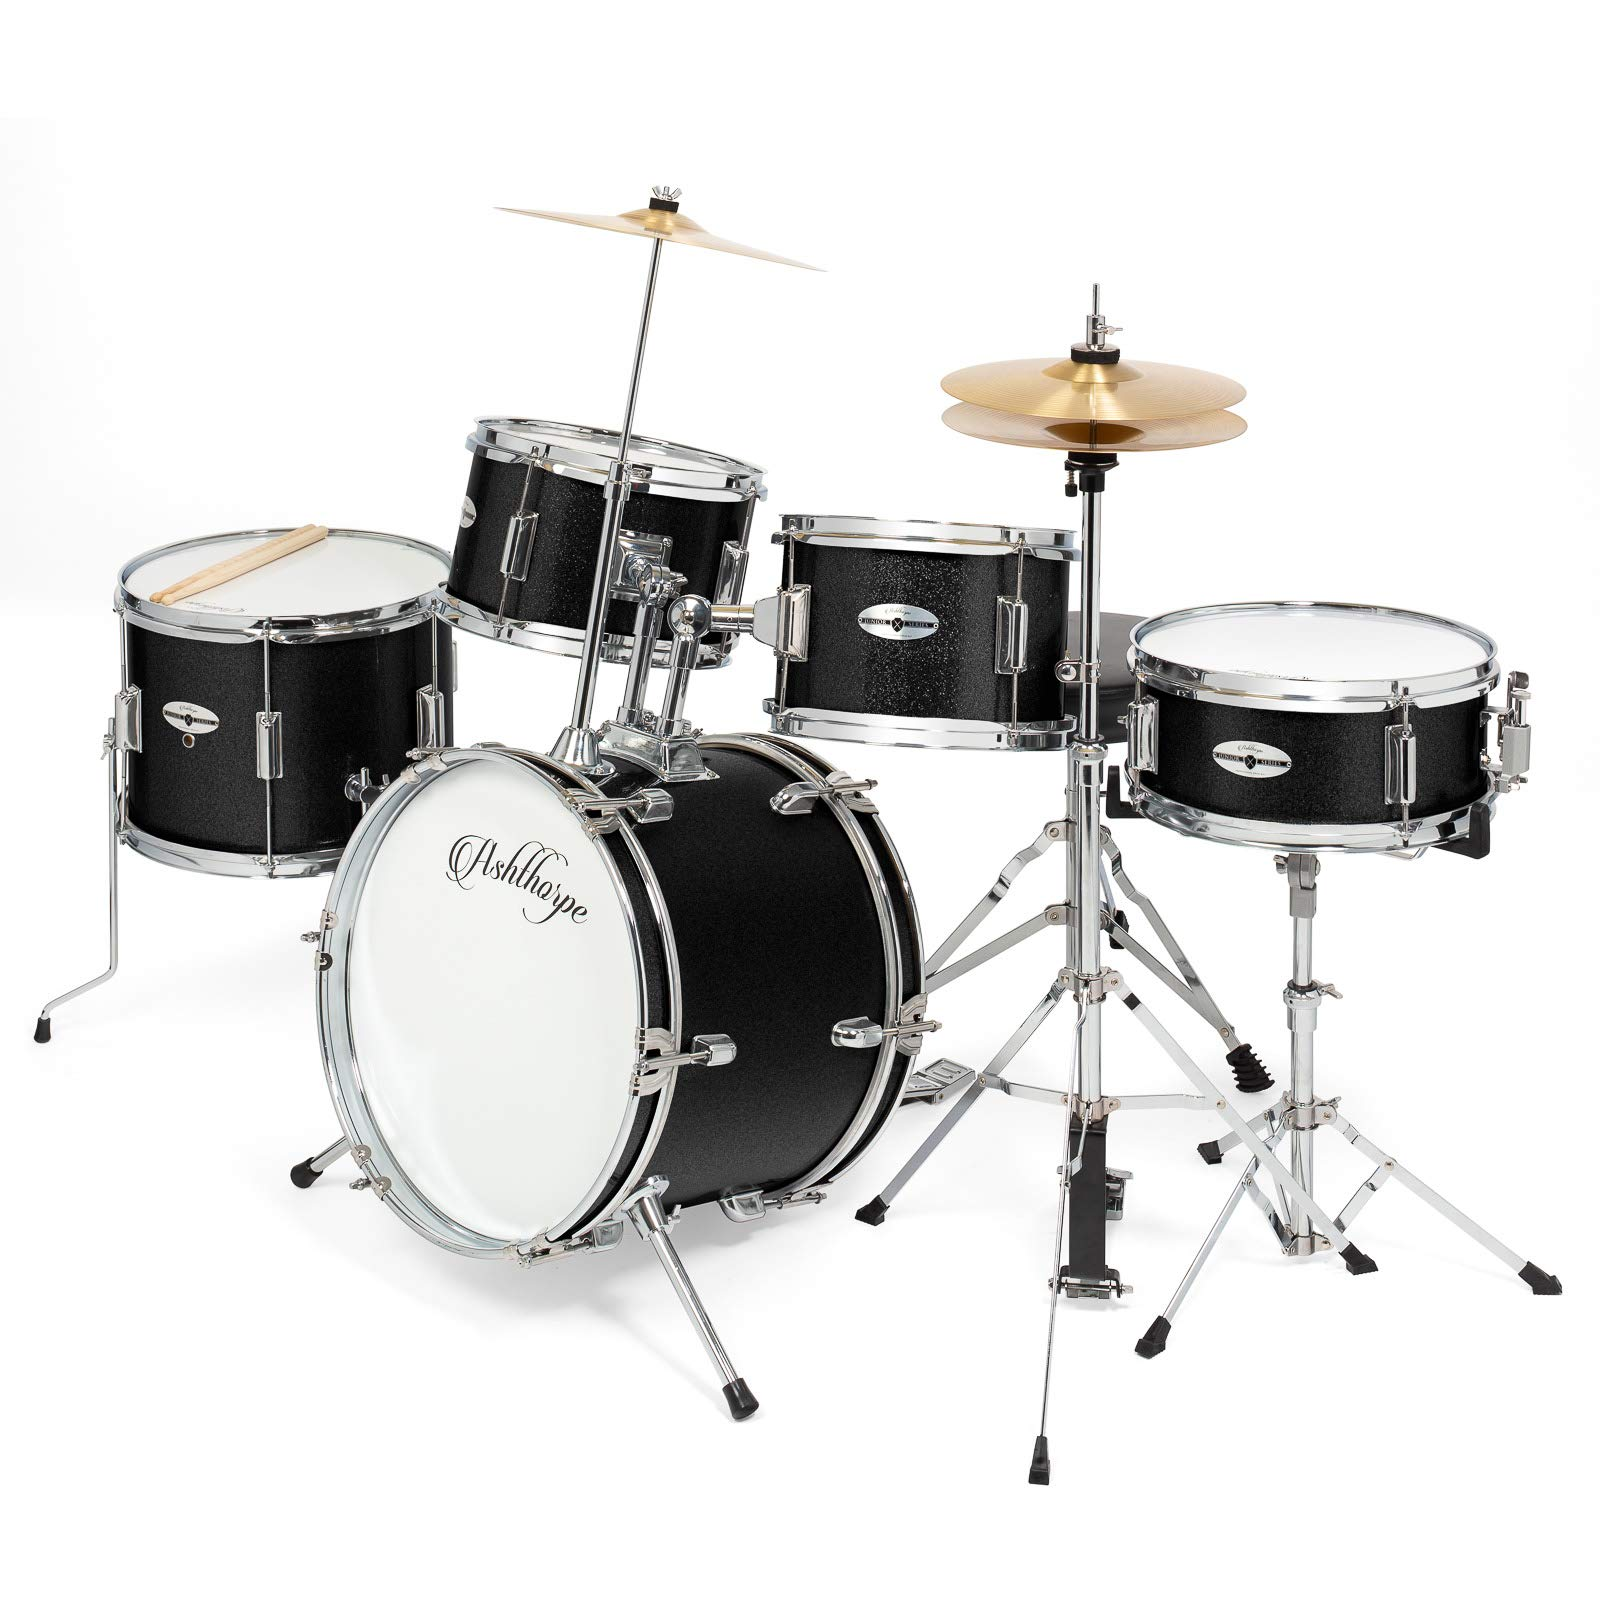 Ashthorpe 5-Piece Complete Kid's Junior Drum Set with Genuine Brass Cymbals - Children's Professional Kit with 16'' Bass Drum, Adjustable Throne, Cymbals, Hi-Hats, Pedals & Drumsticks - Black by Ashthorpe